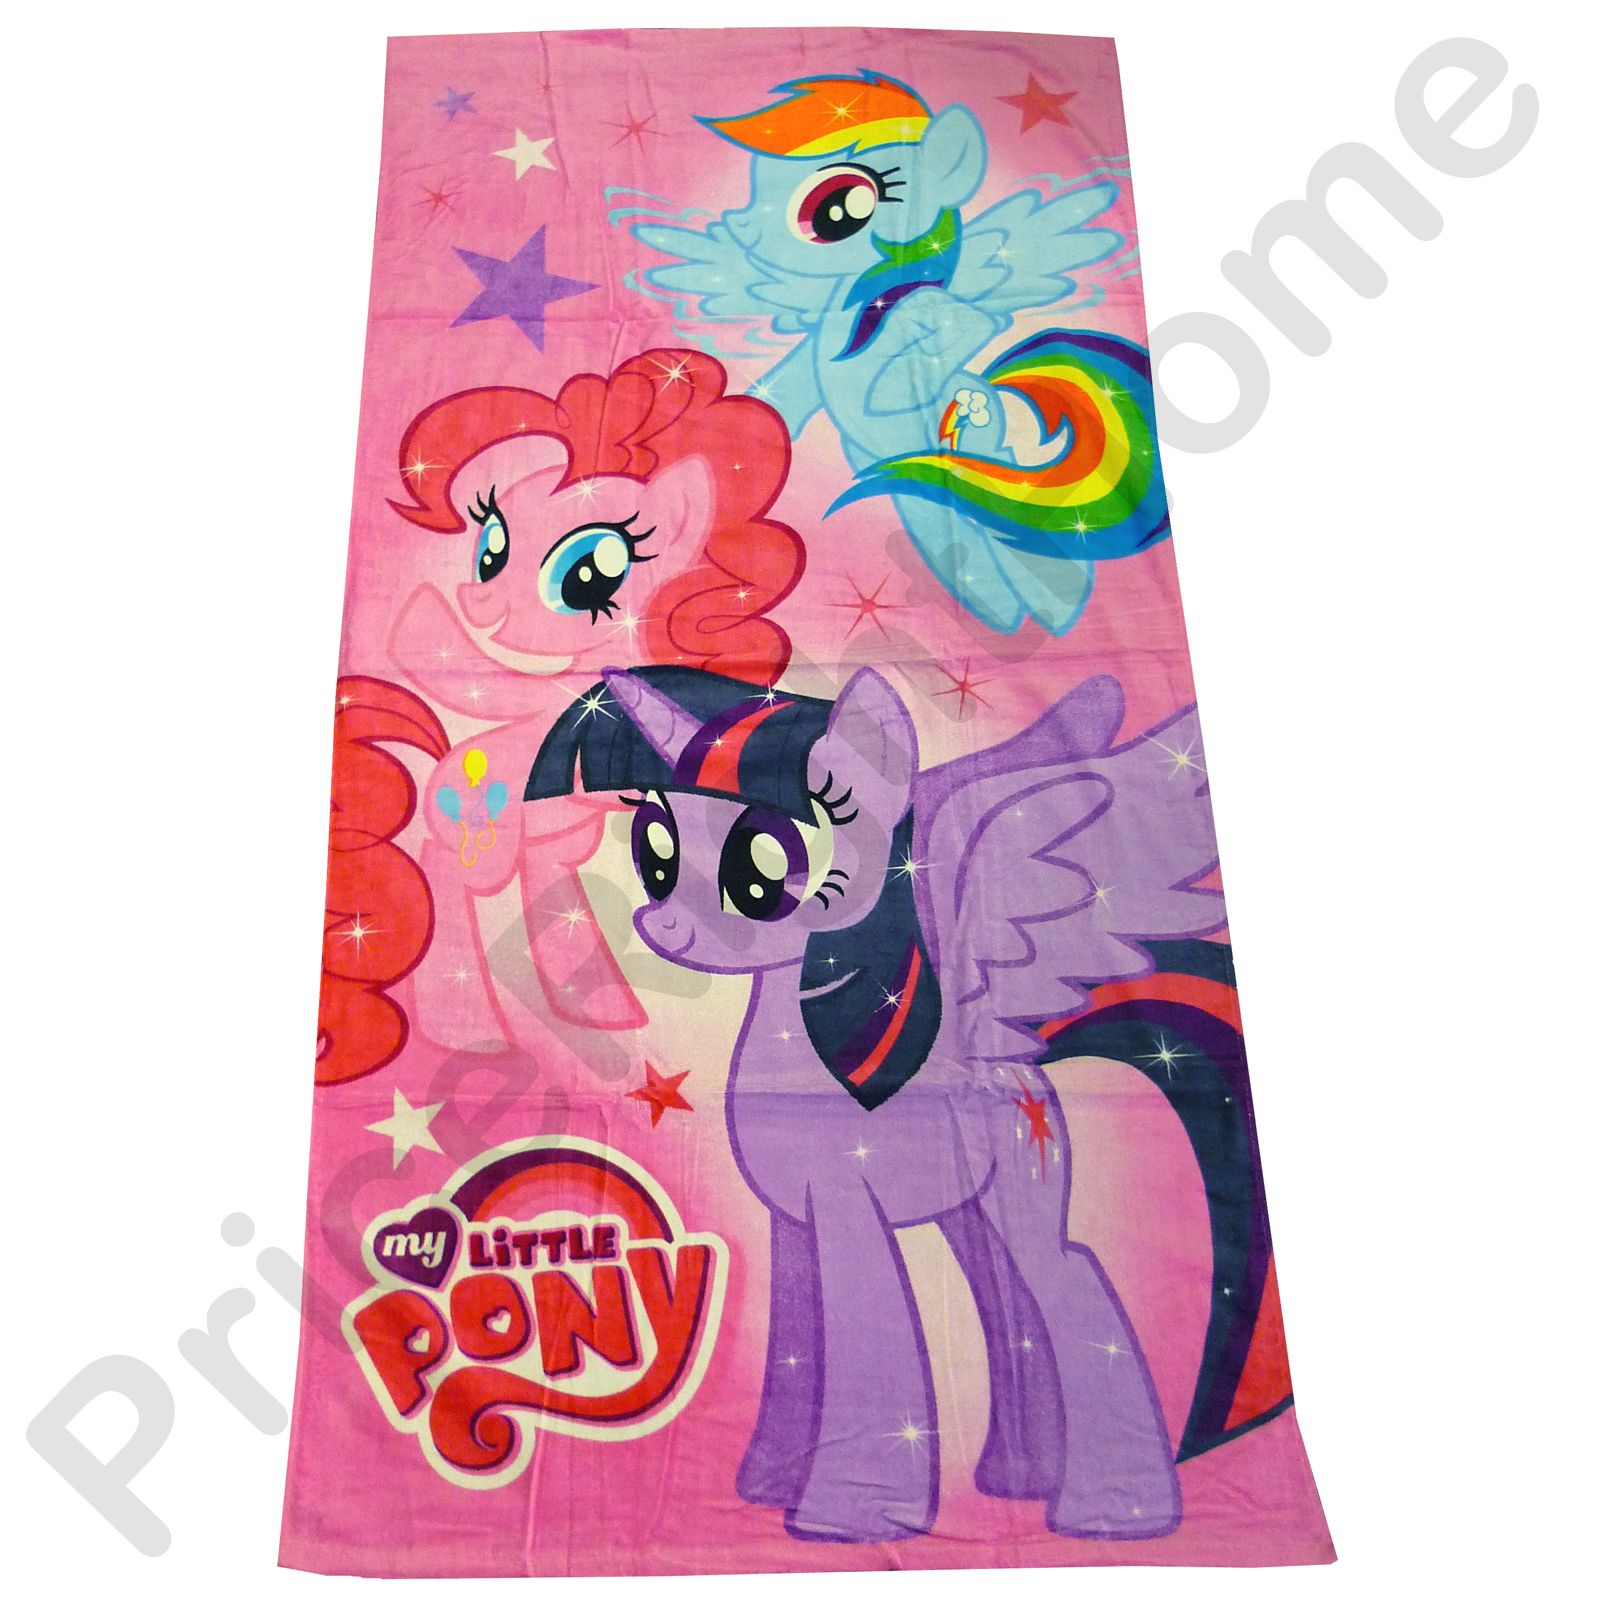 Baño Ninos Frecuencia:My Little Pony Bath Towel